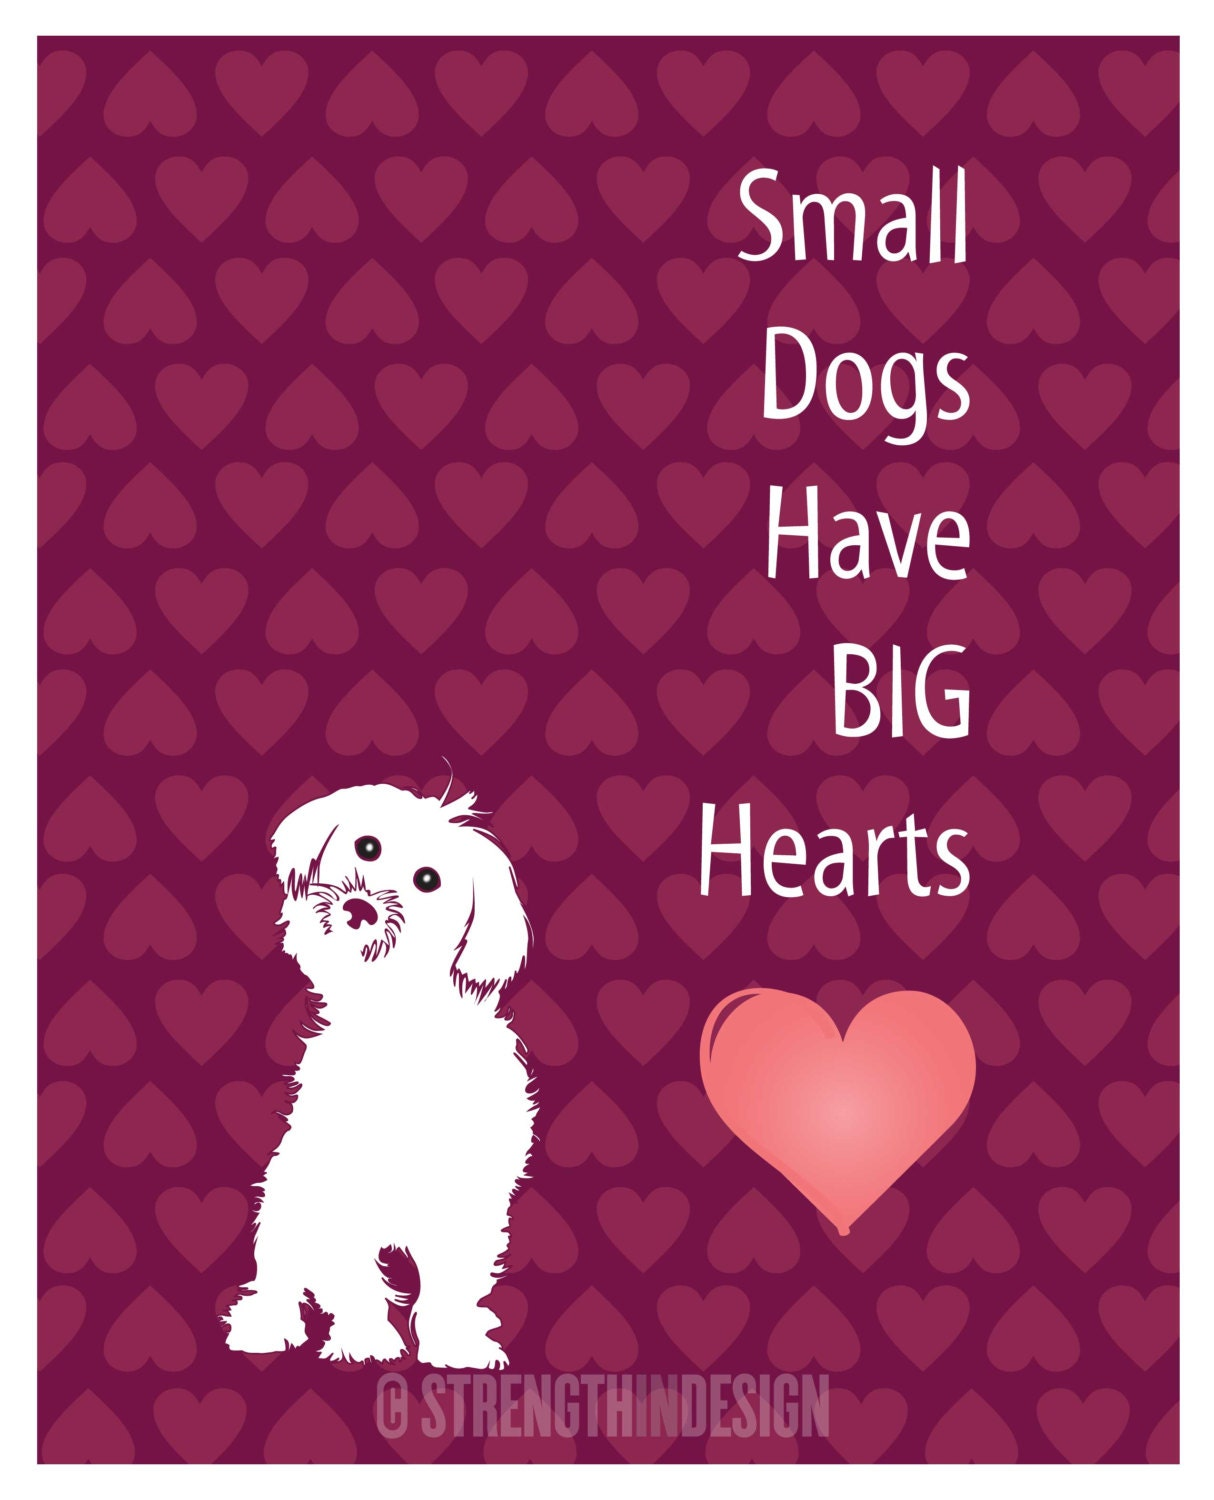 Dog Love Quotes Dog Art Print Dog Quotes Gift For Dog Lover Small Dogs Have Big